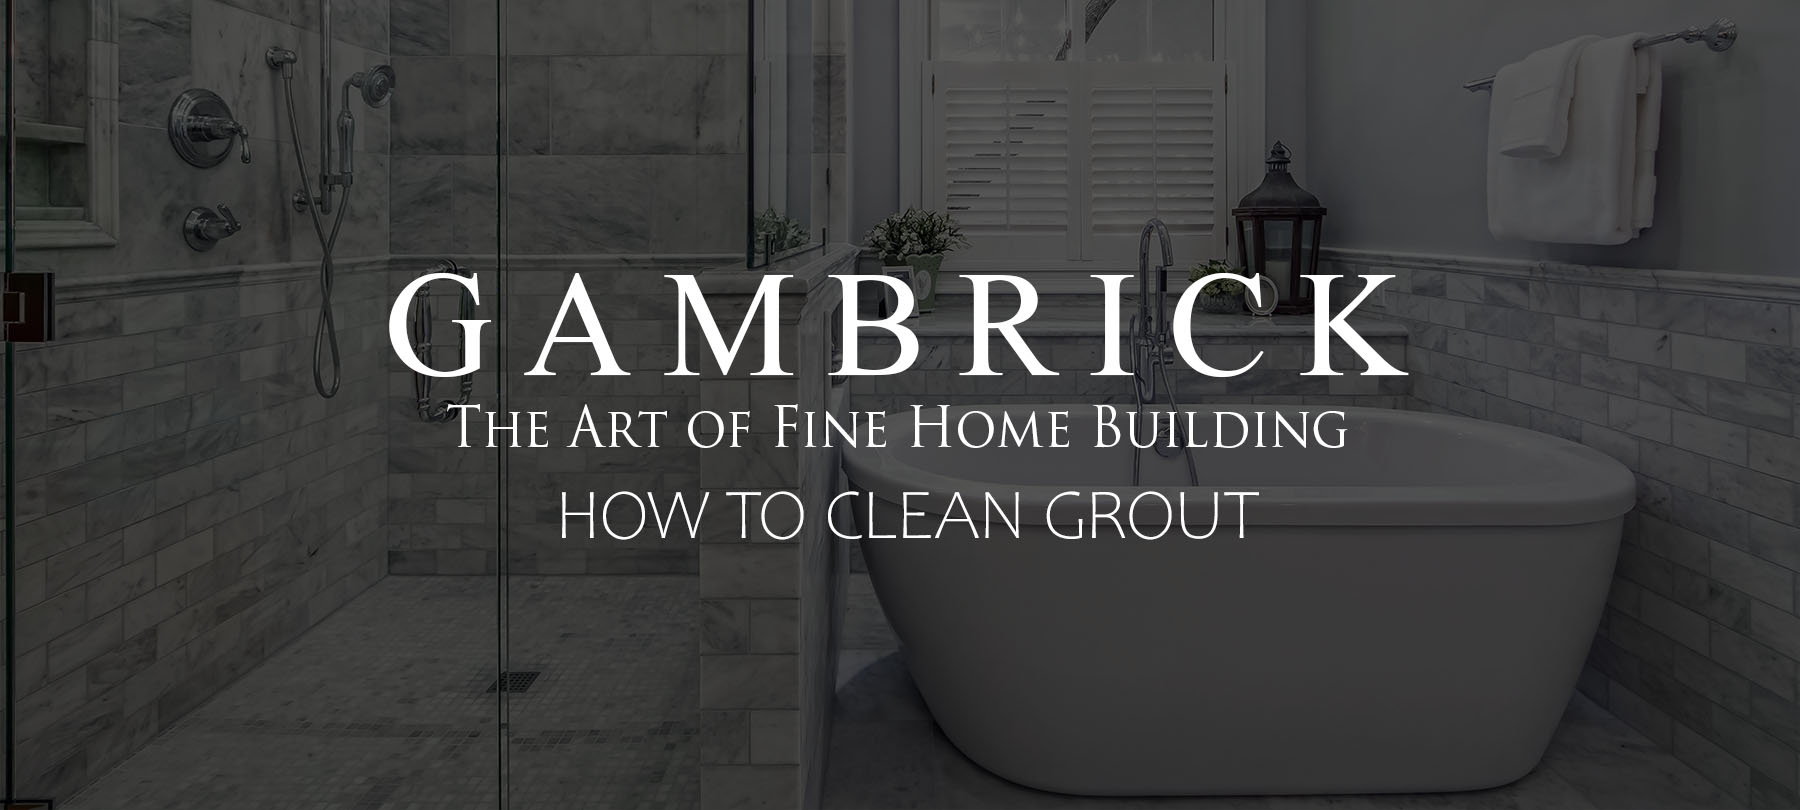 how to clean grout banner picture | Gambrick